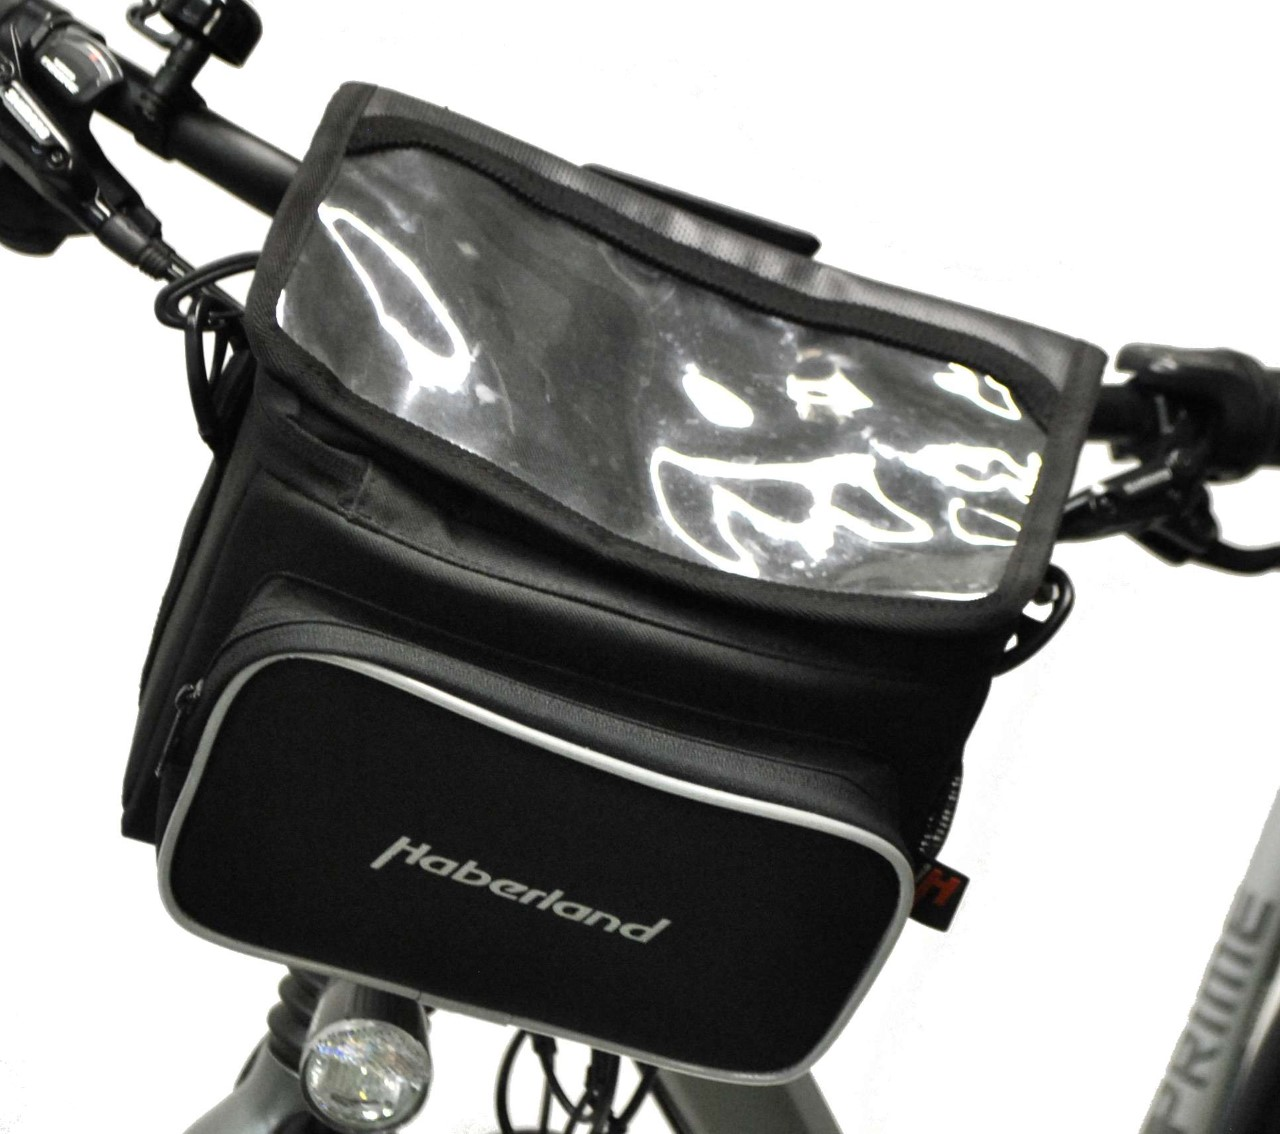 Front travel saddlebags